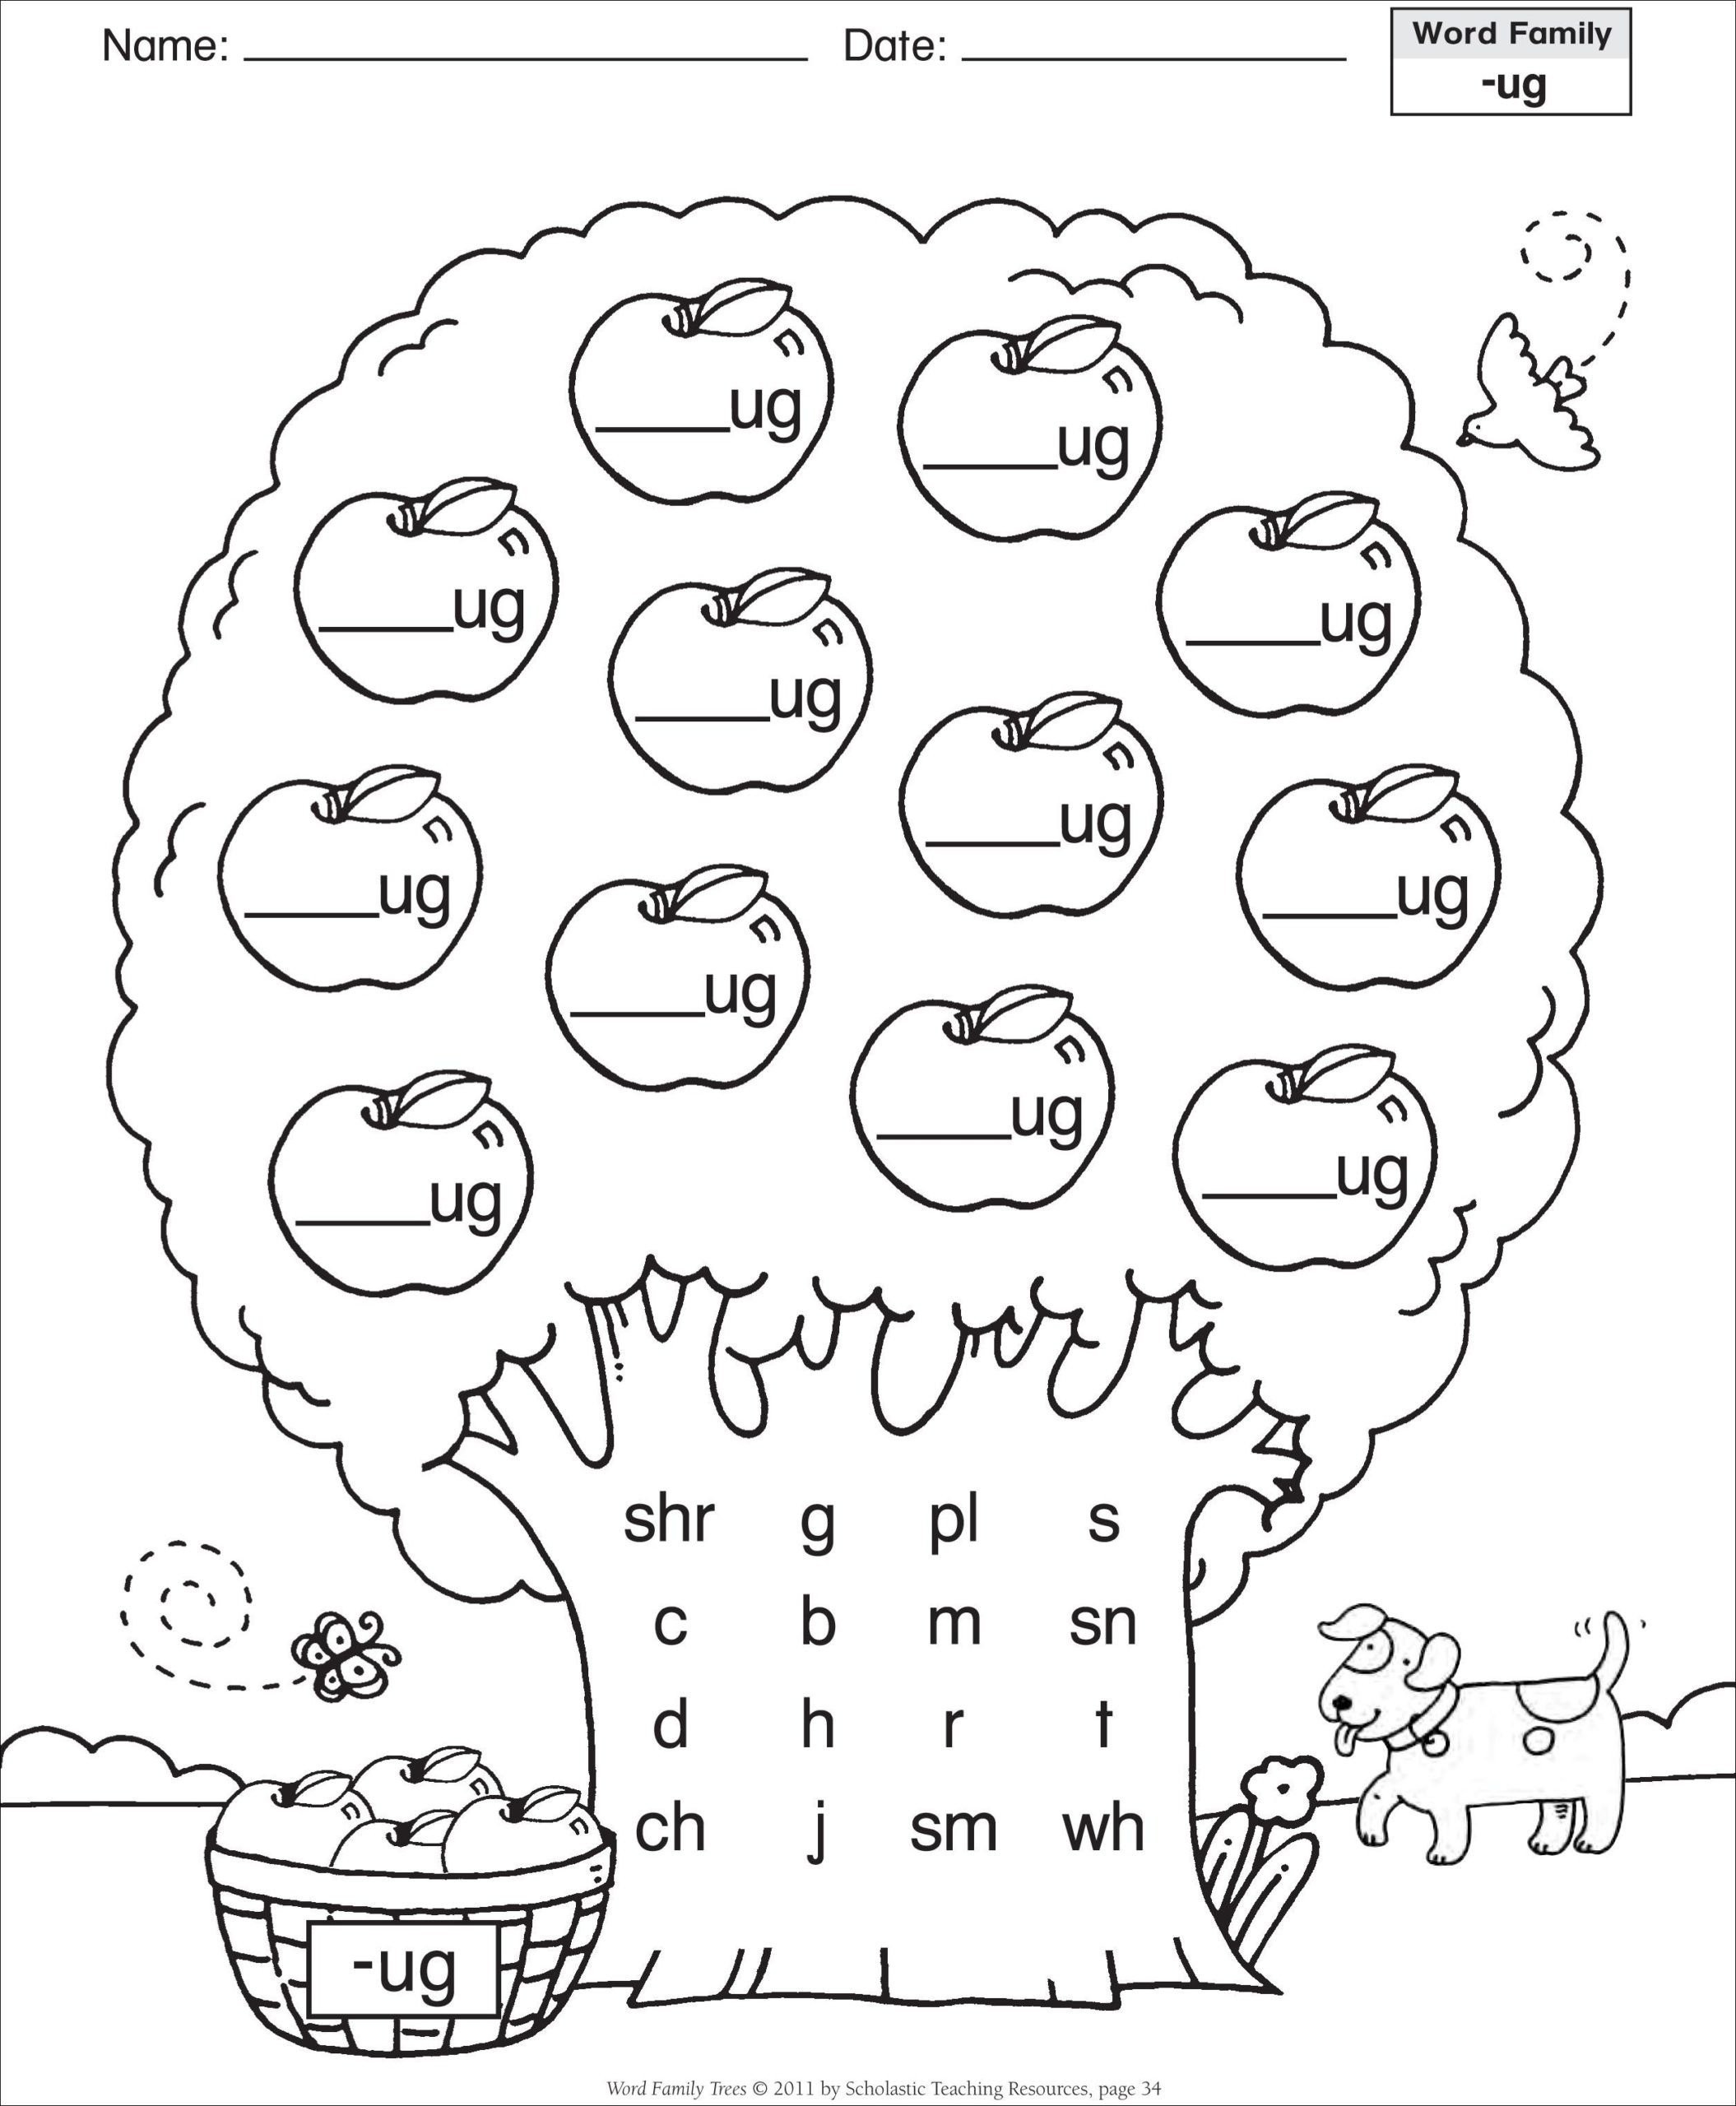 Suffix Worksheets Middle School Short Vowel Ug Word Family Tree Families Reading Prefixes